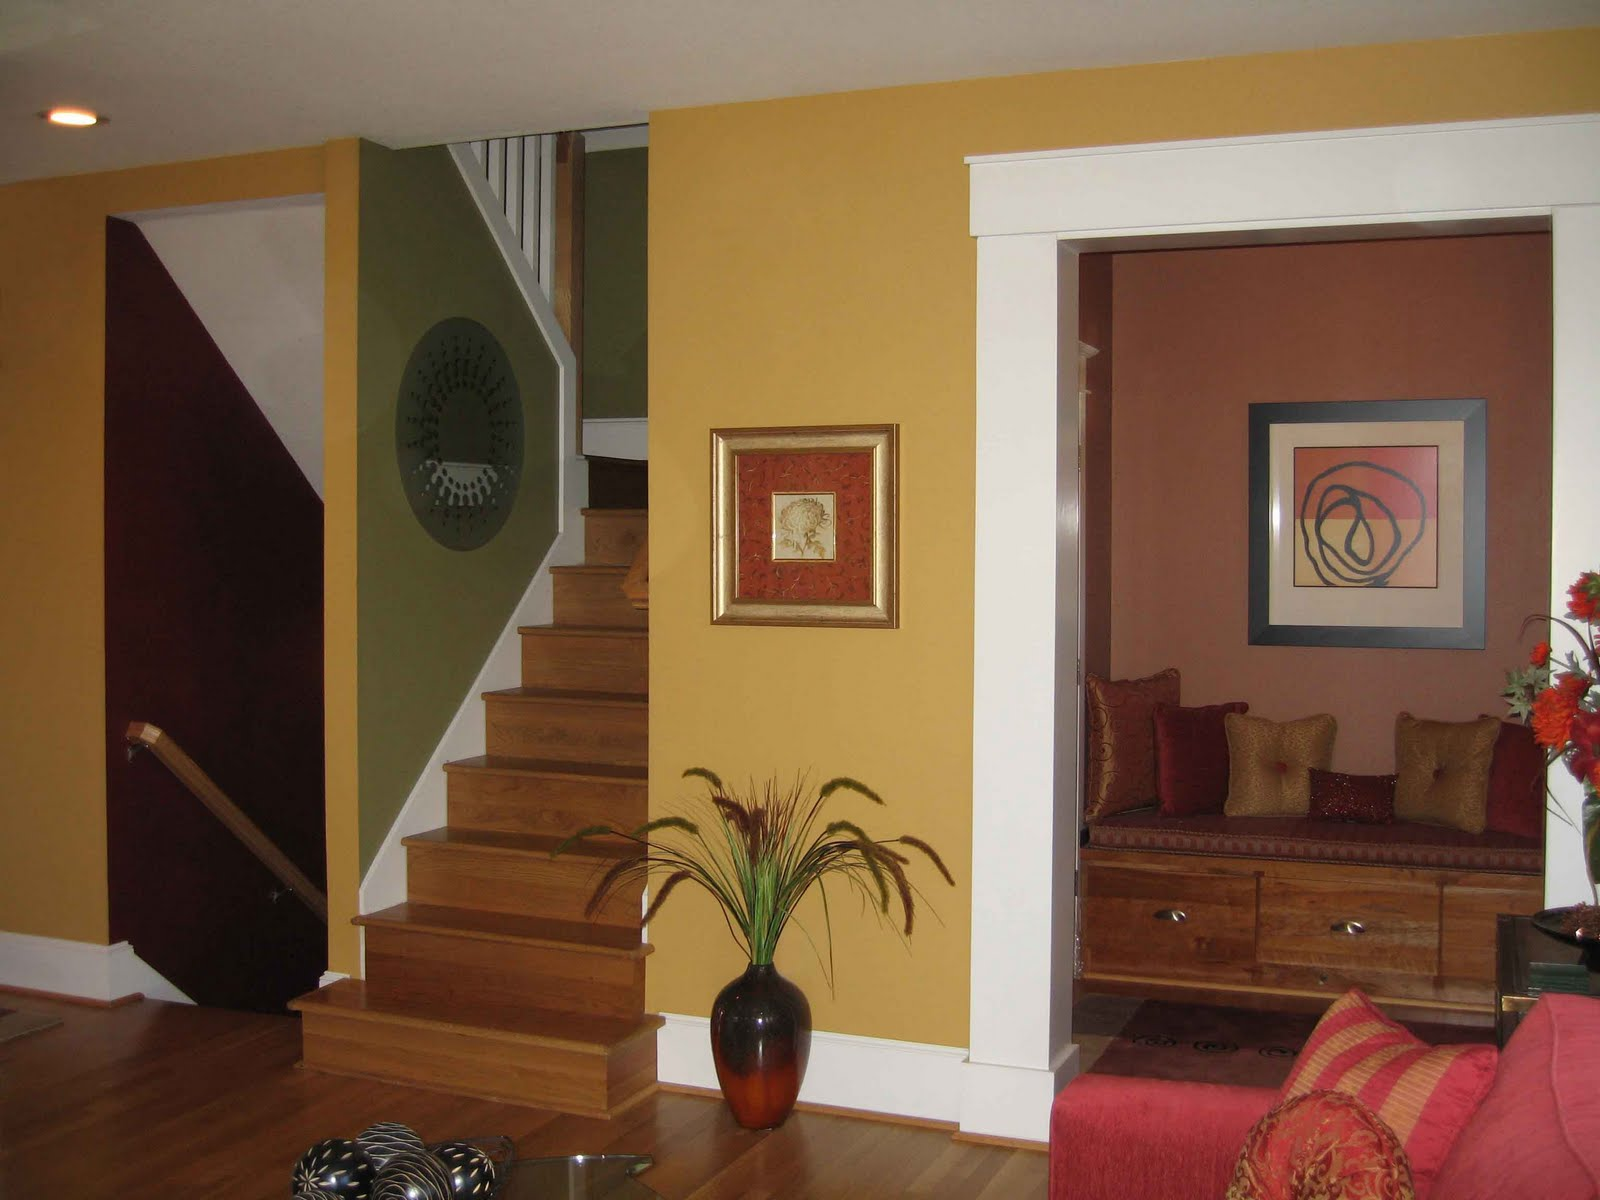 House Painting Tips U2013 How To Choose The Best House Painting Colors